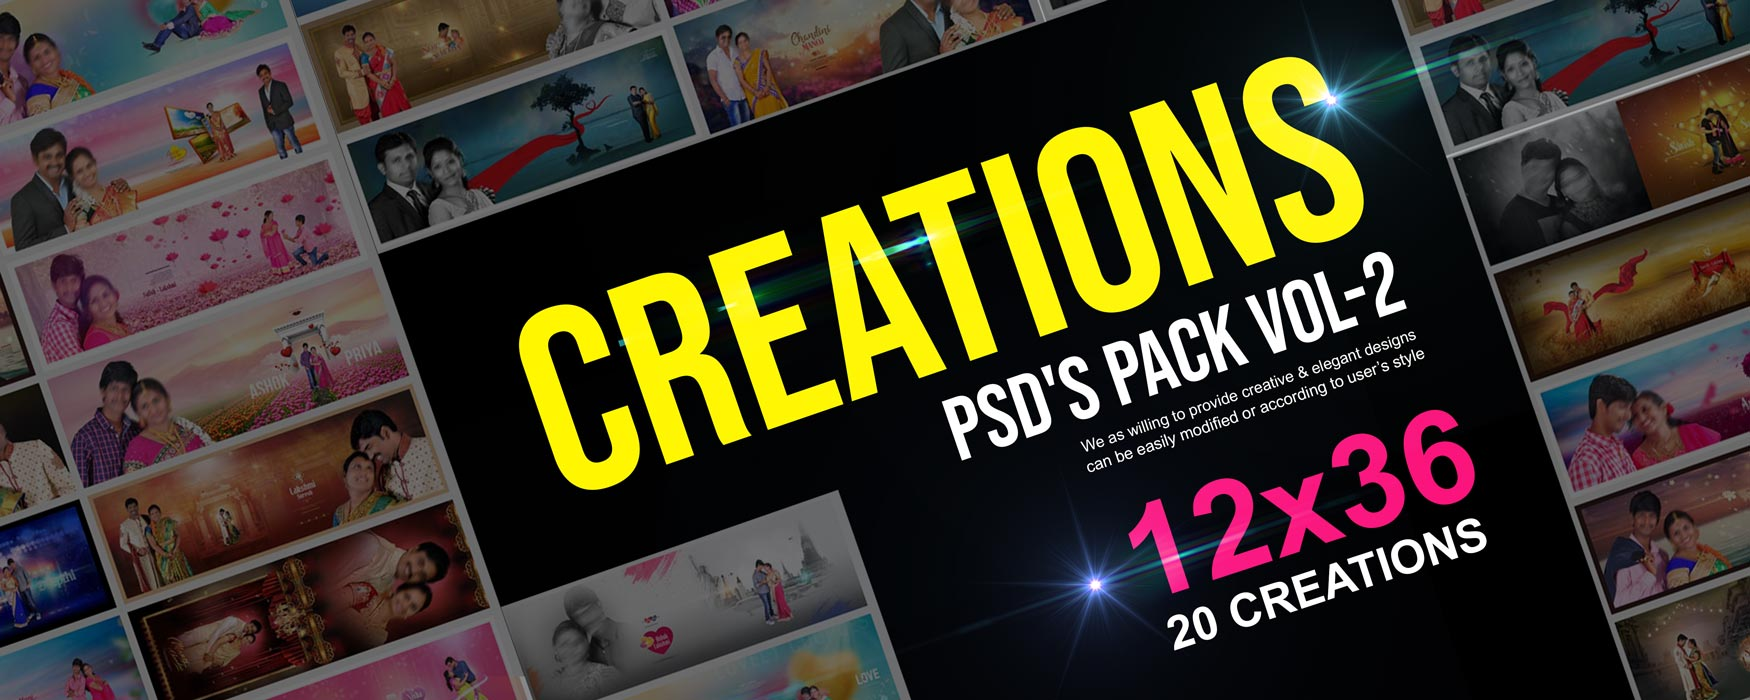 12×36 Creations Pack Vol-2